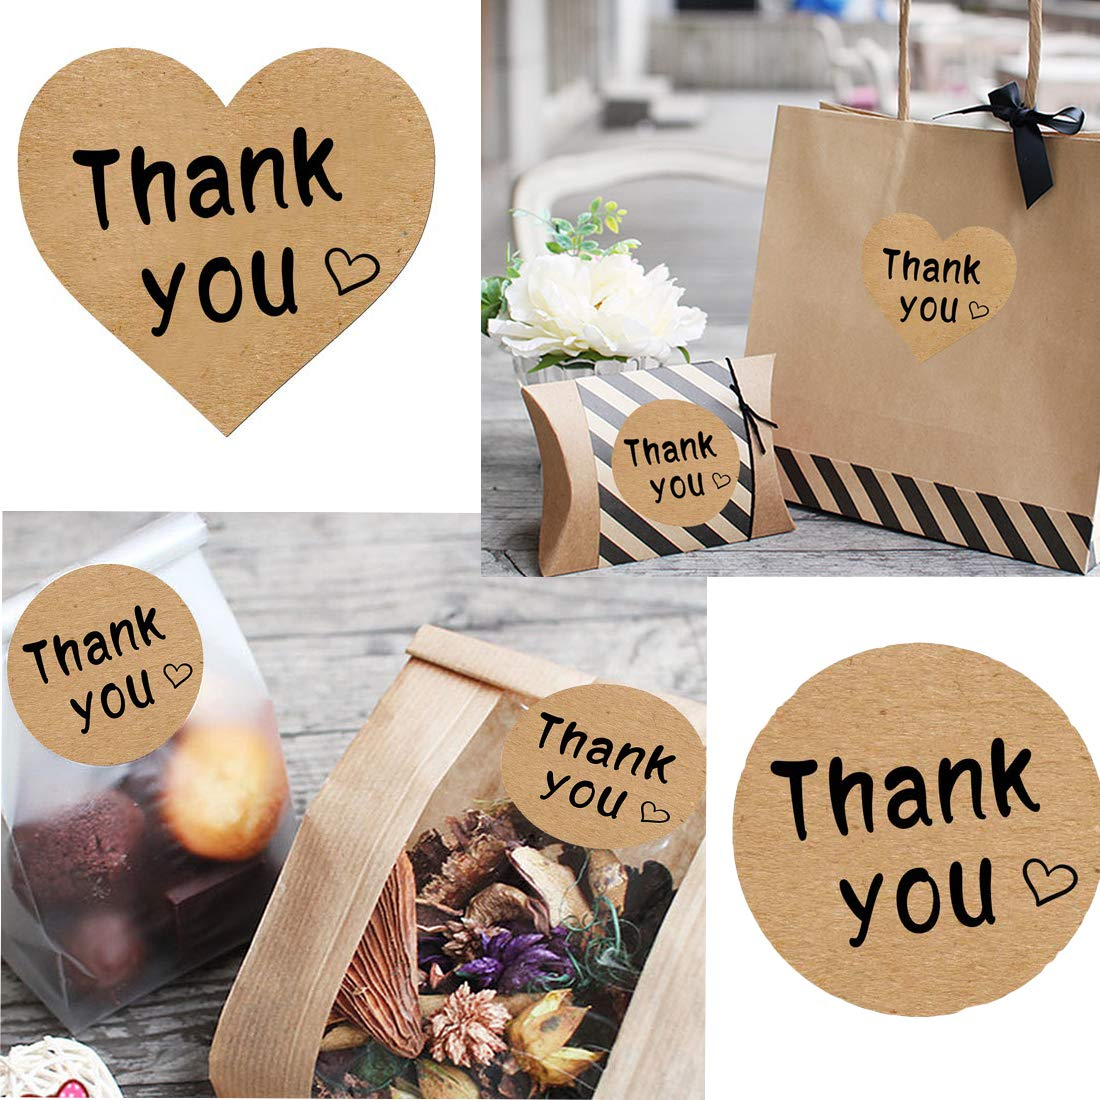 Thank You Stickers Roll 1000pcs Adhesive Labels Kraft Paper with Black Hearts, Decorative Sealing Stickers for Christmas Gifts, Wedding, Party by Vinkki (Image #1)